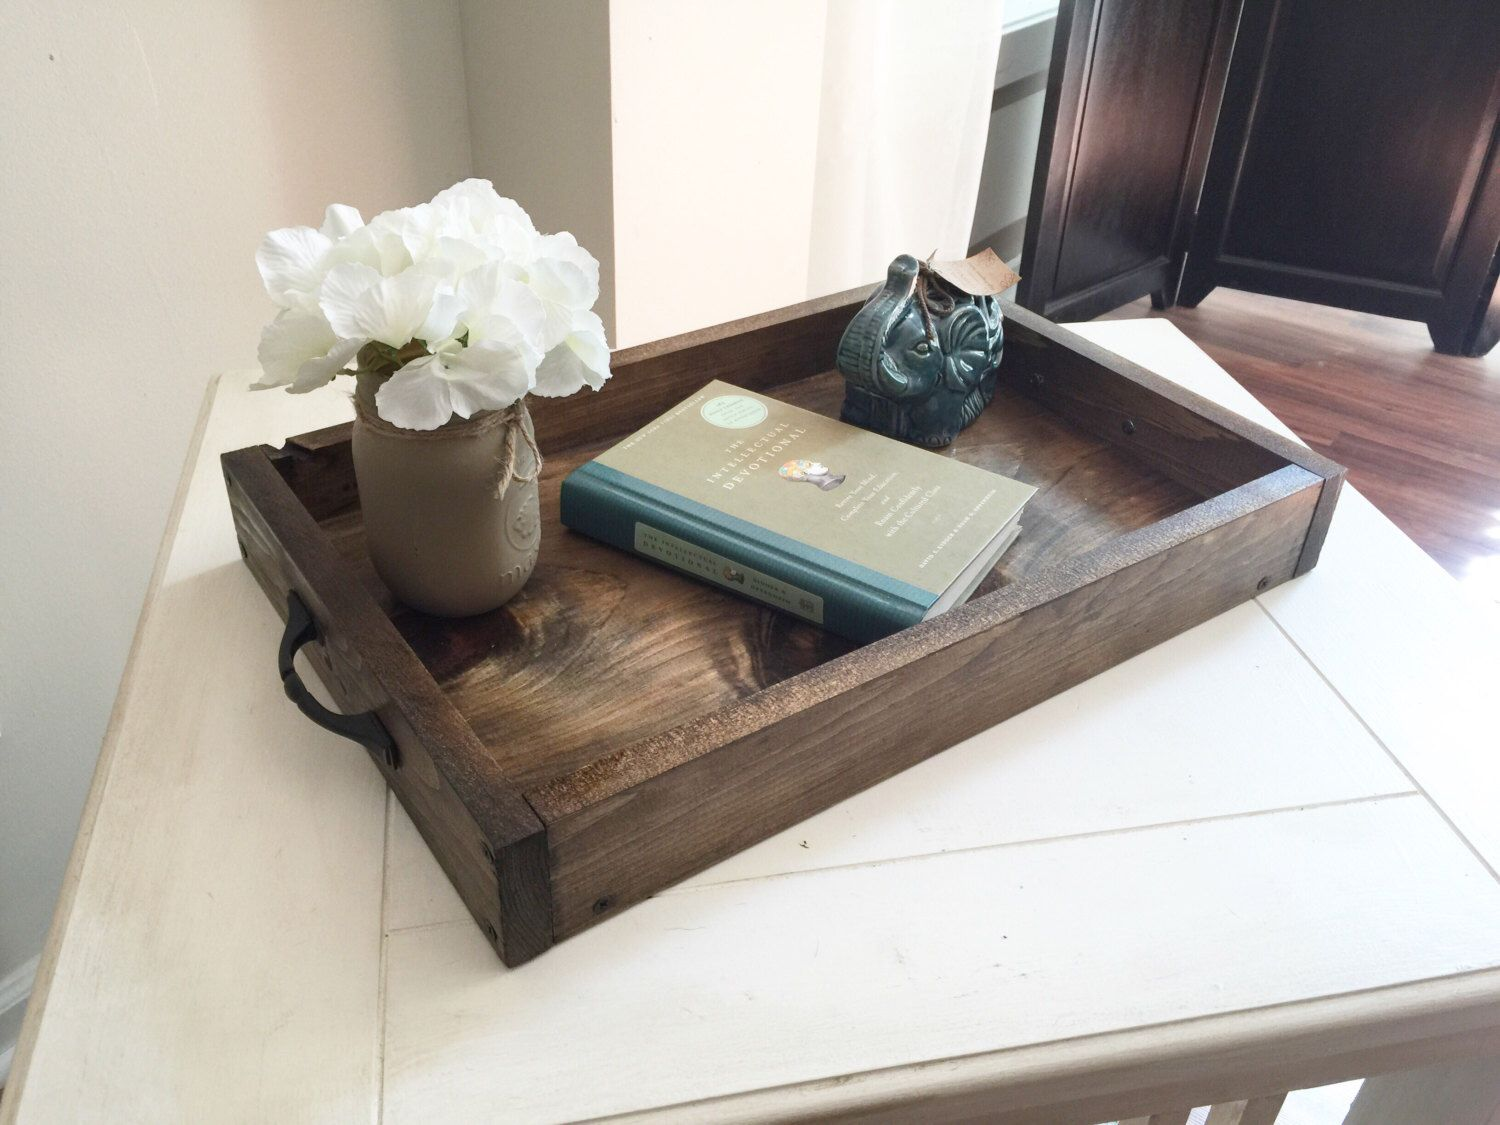 Decorative Ottoman Tray Rustic Wooden Ottoman Tray  Decorative Tray  Coffee Table Tray